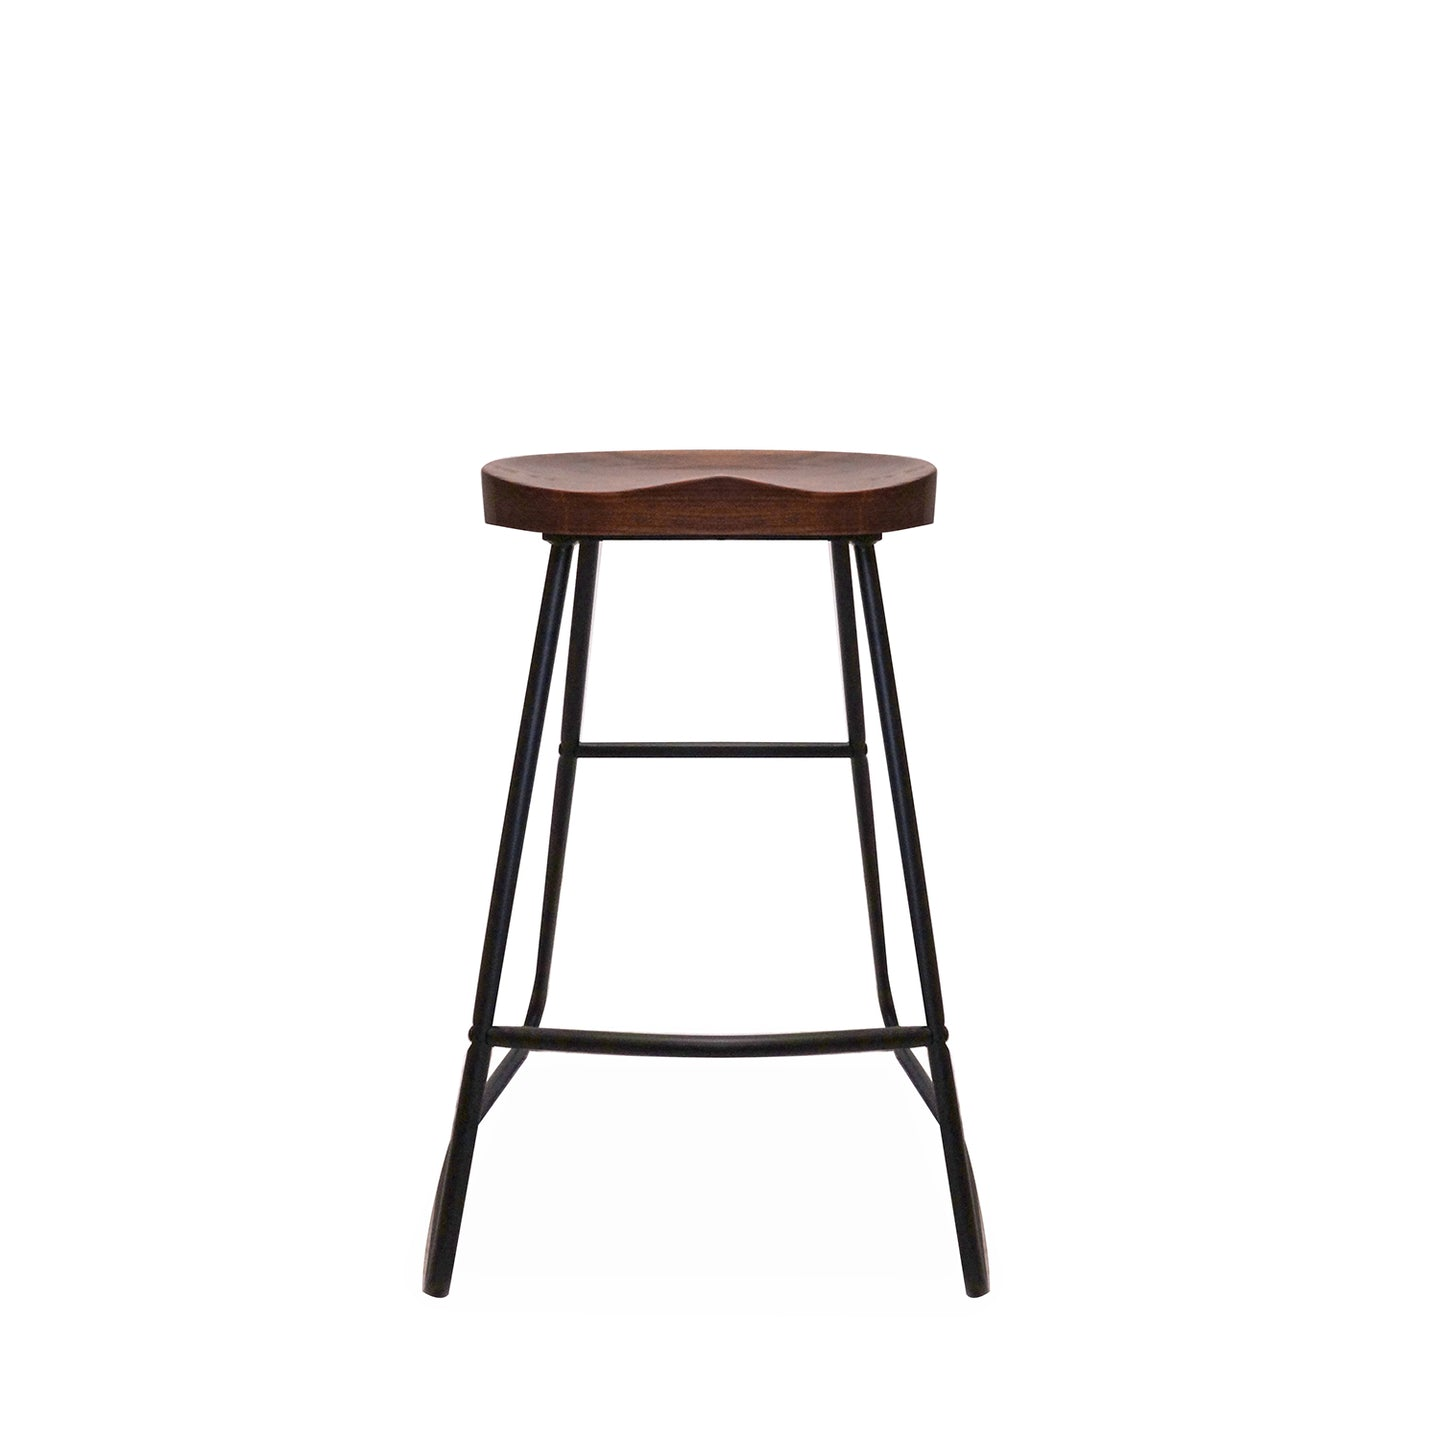 RANCH BARSTOOL